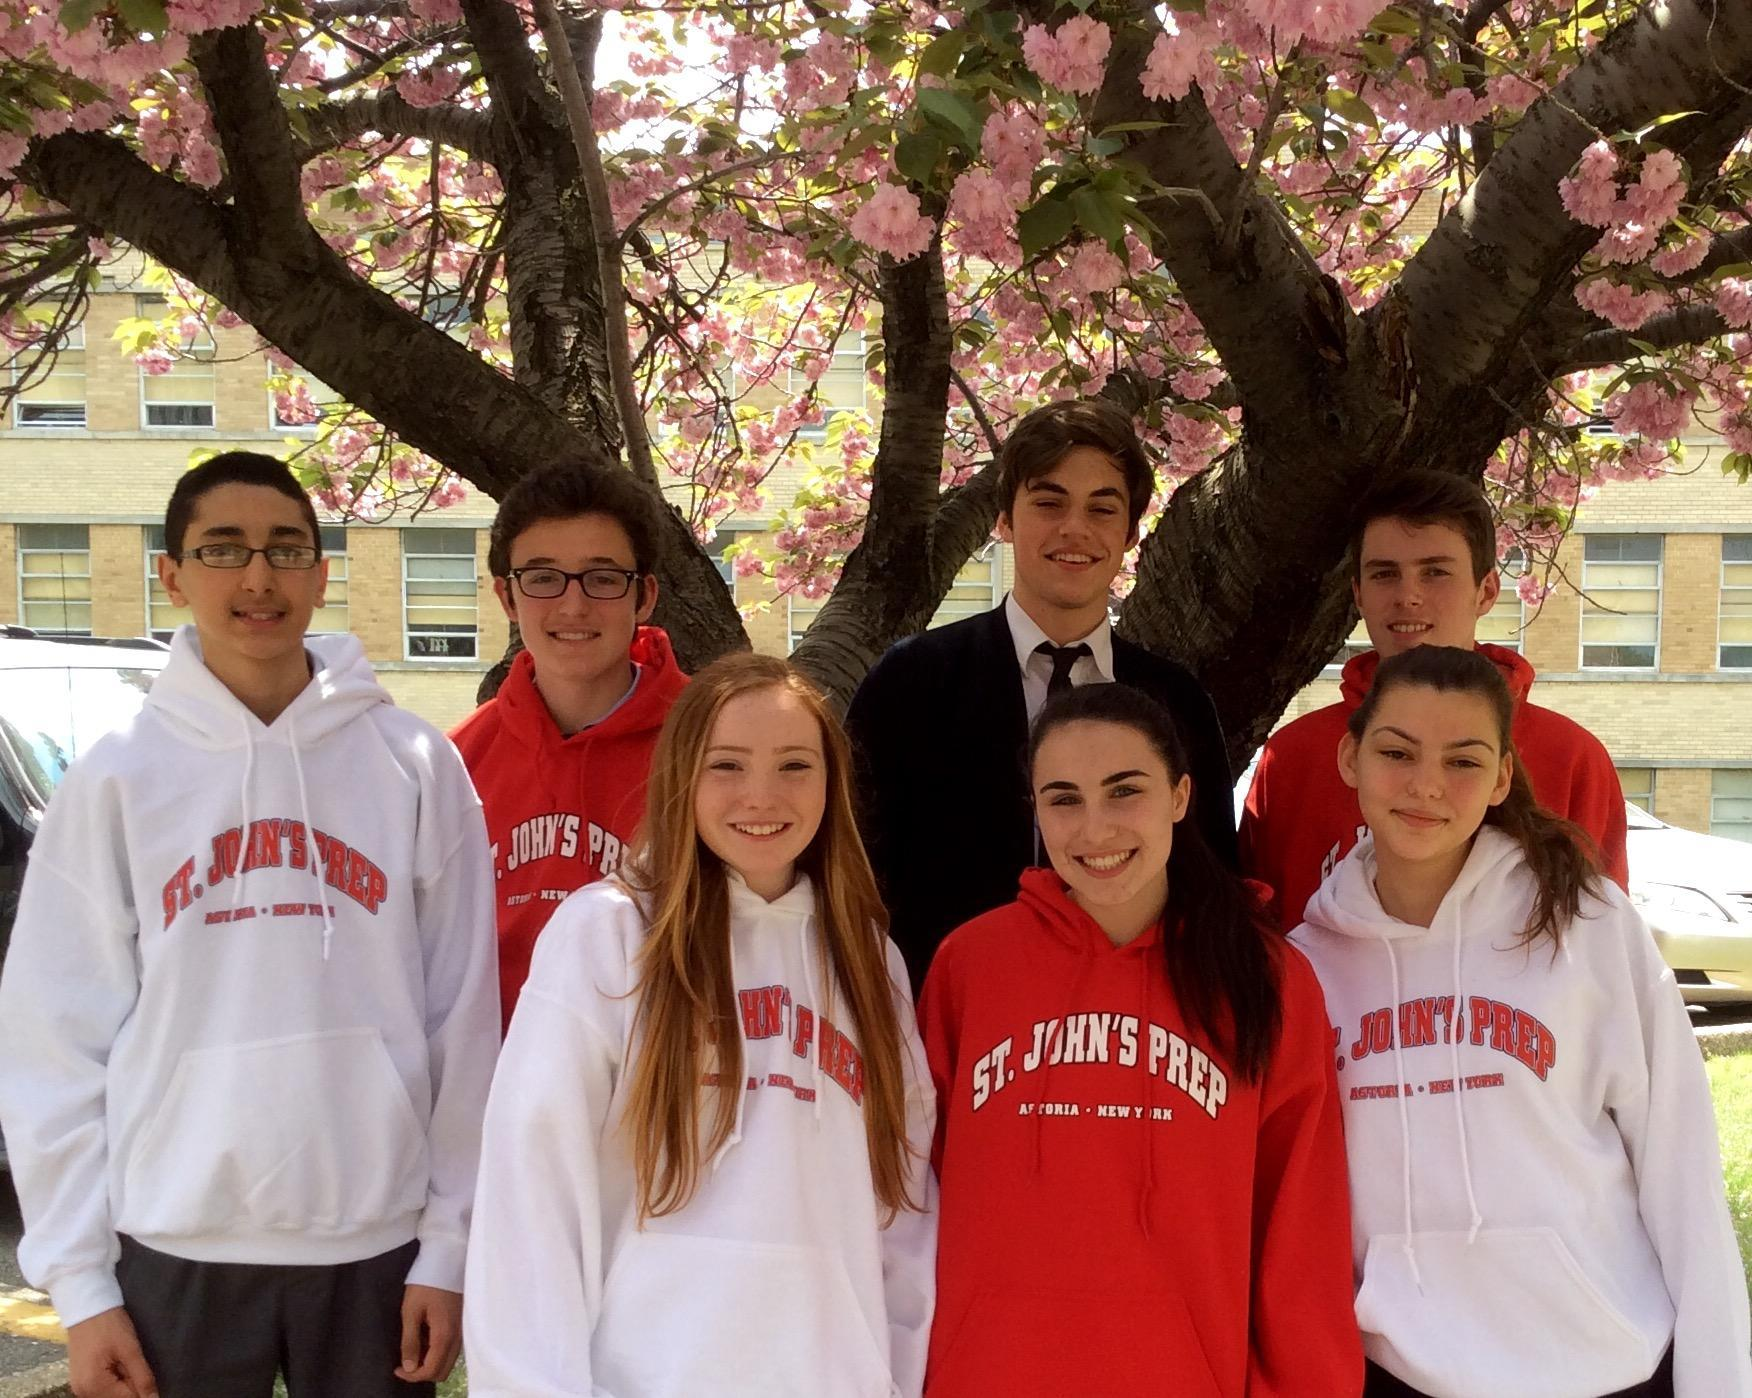 St. John's Prep students under tree